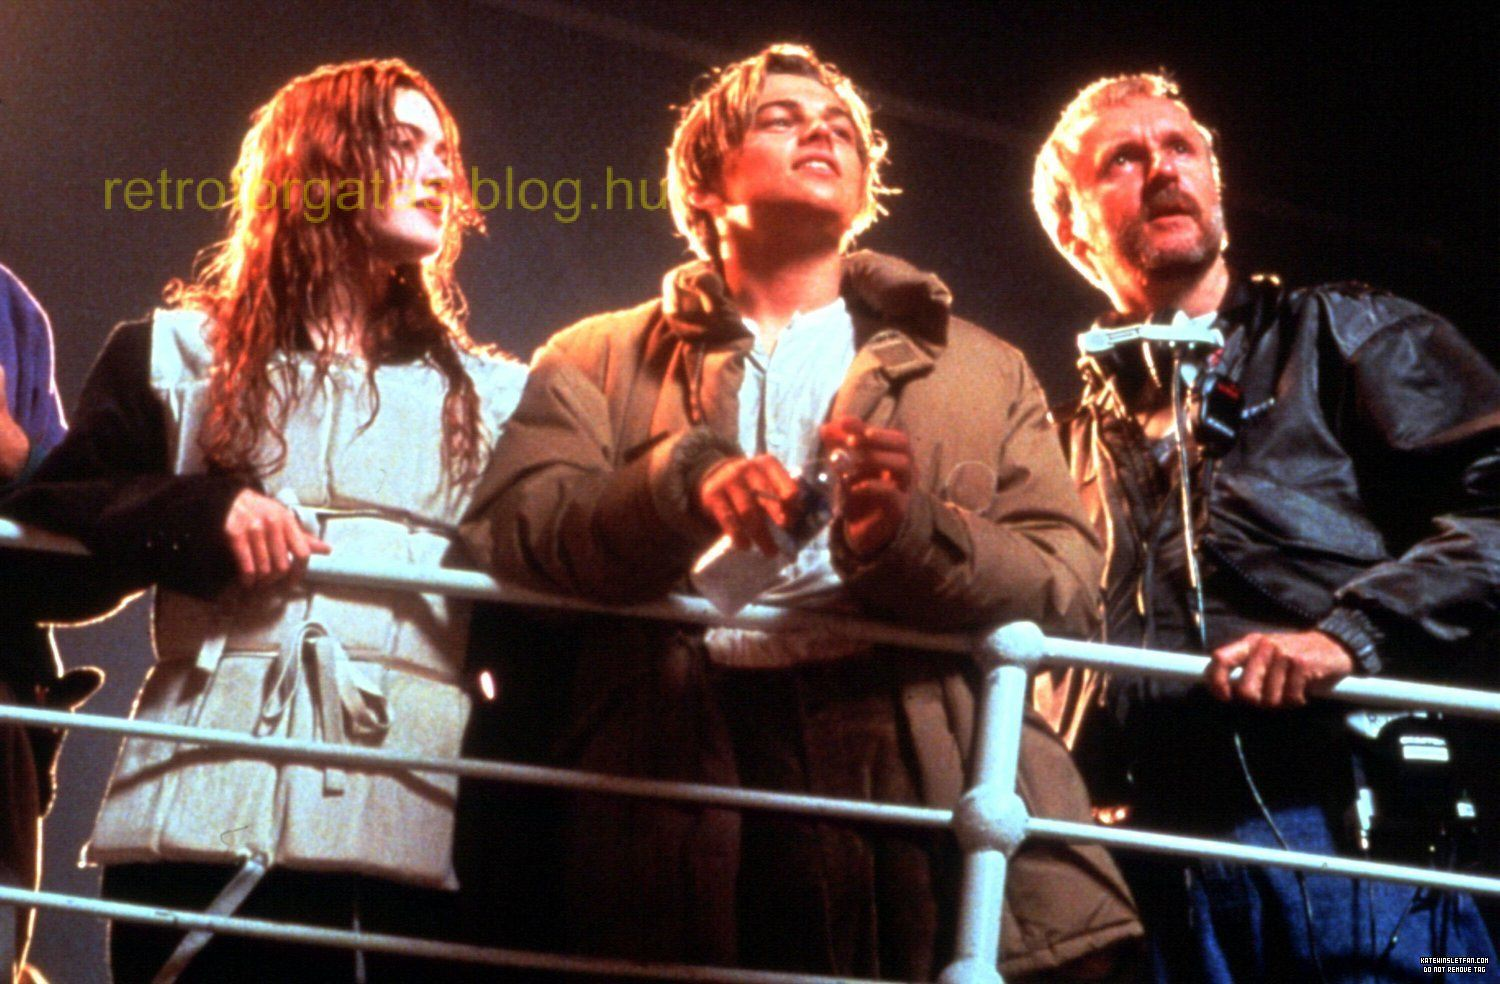 behind-the-scenes-titanic-8654045-1500-984.jpg